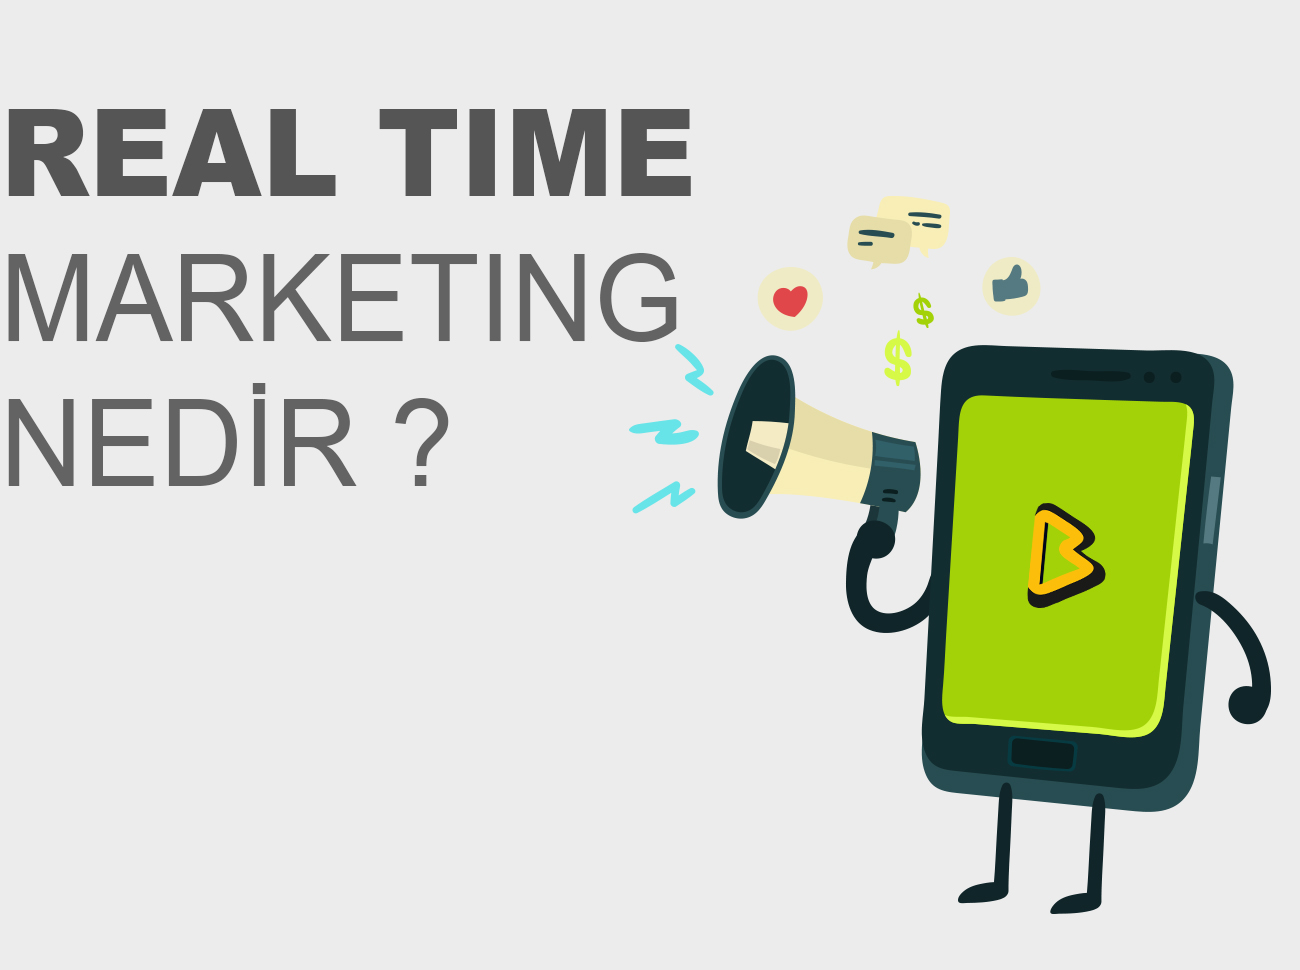 Real Time Marketing Nedir? Niye Önemlidir?